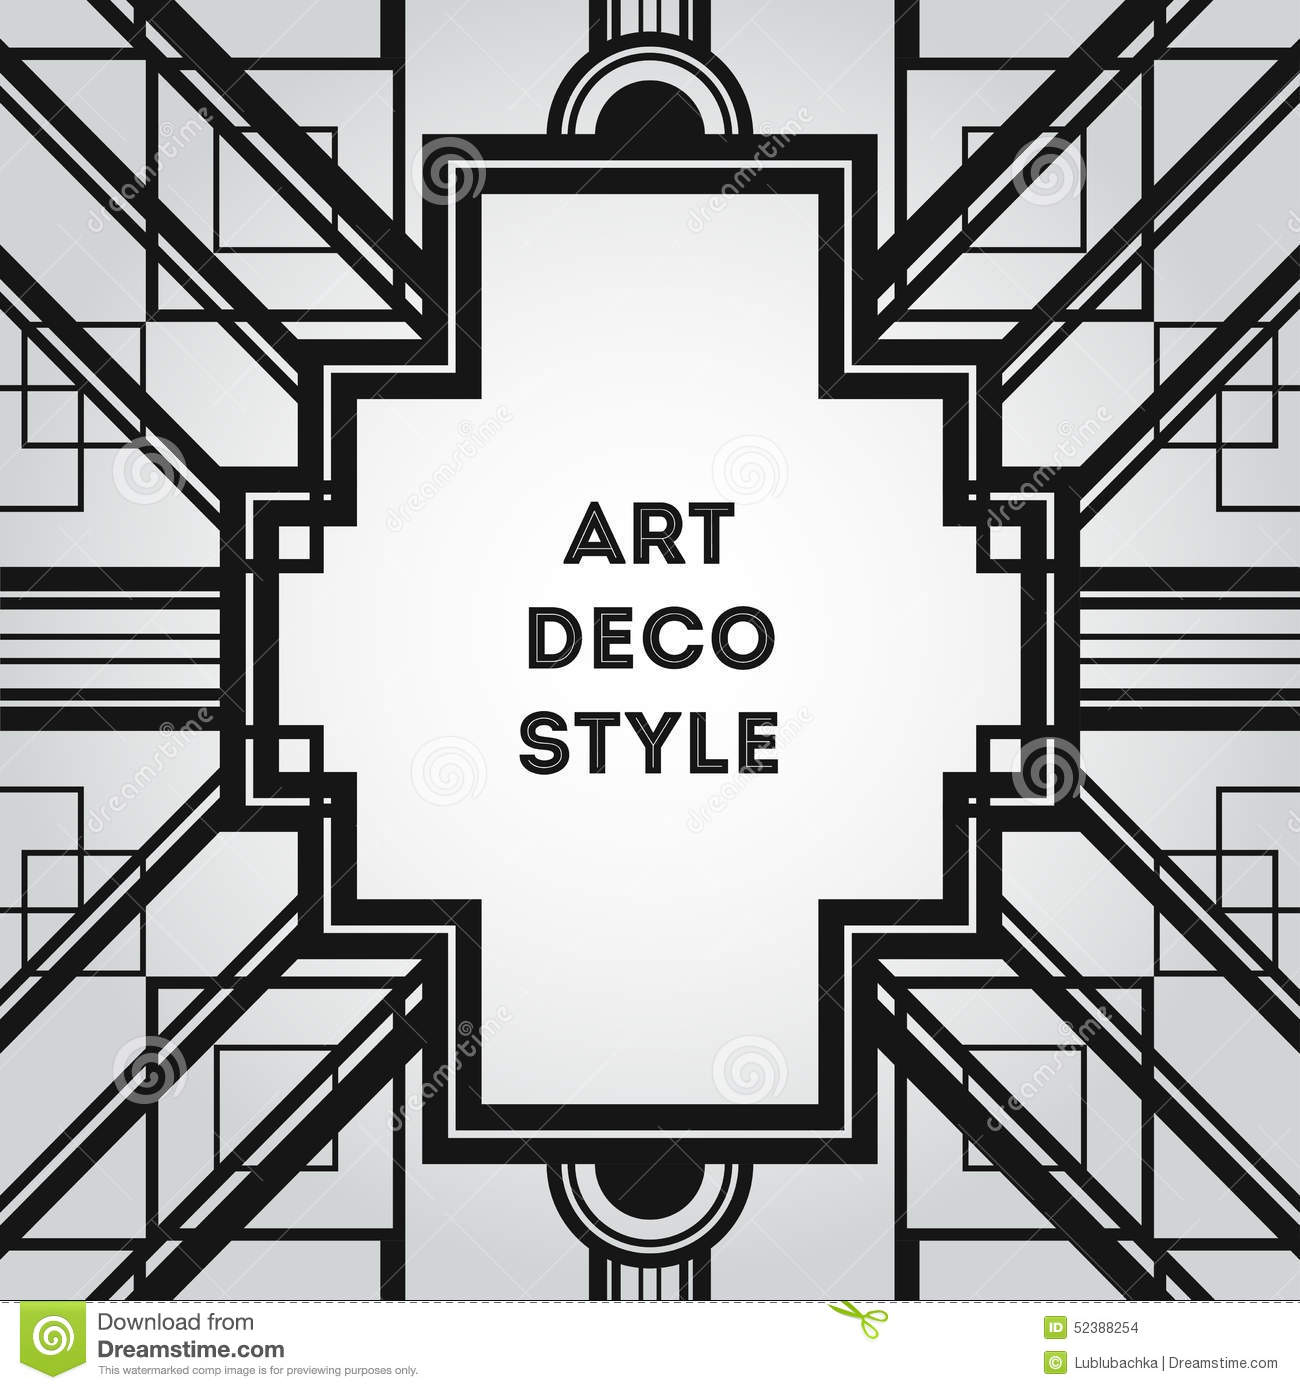 free art deco templates image collections template. Black Bedroom Furniture Sets. Home Design Ideas